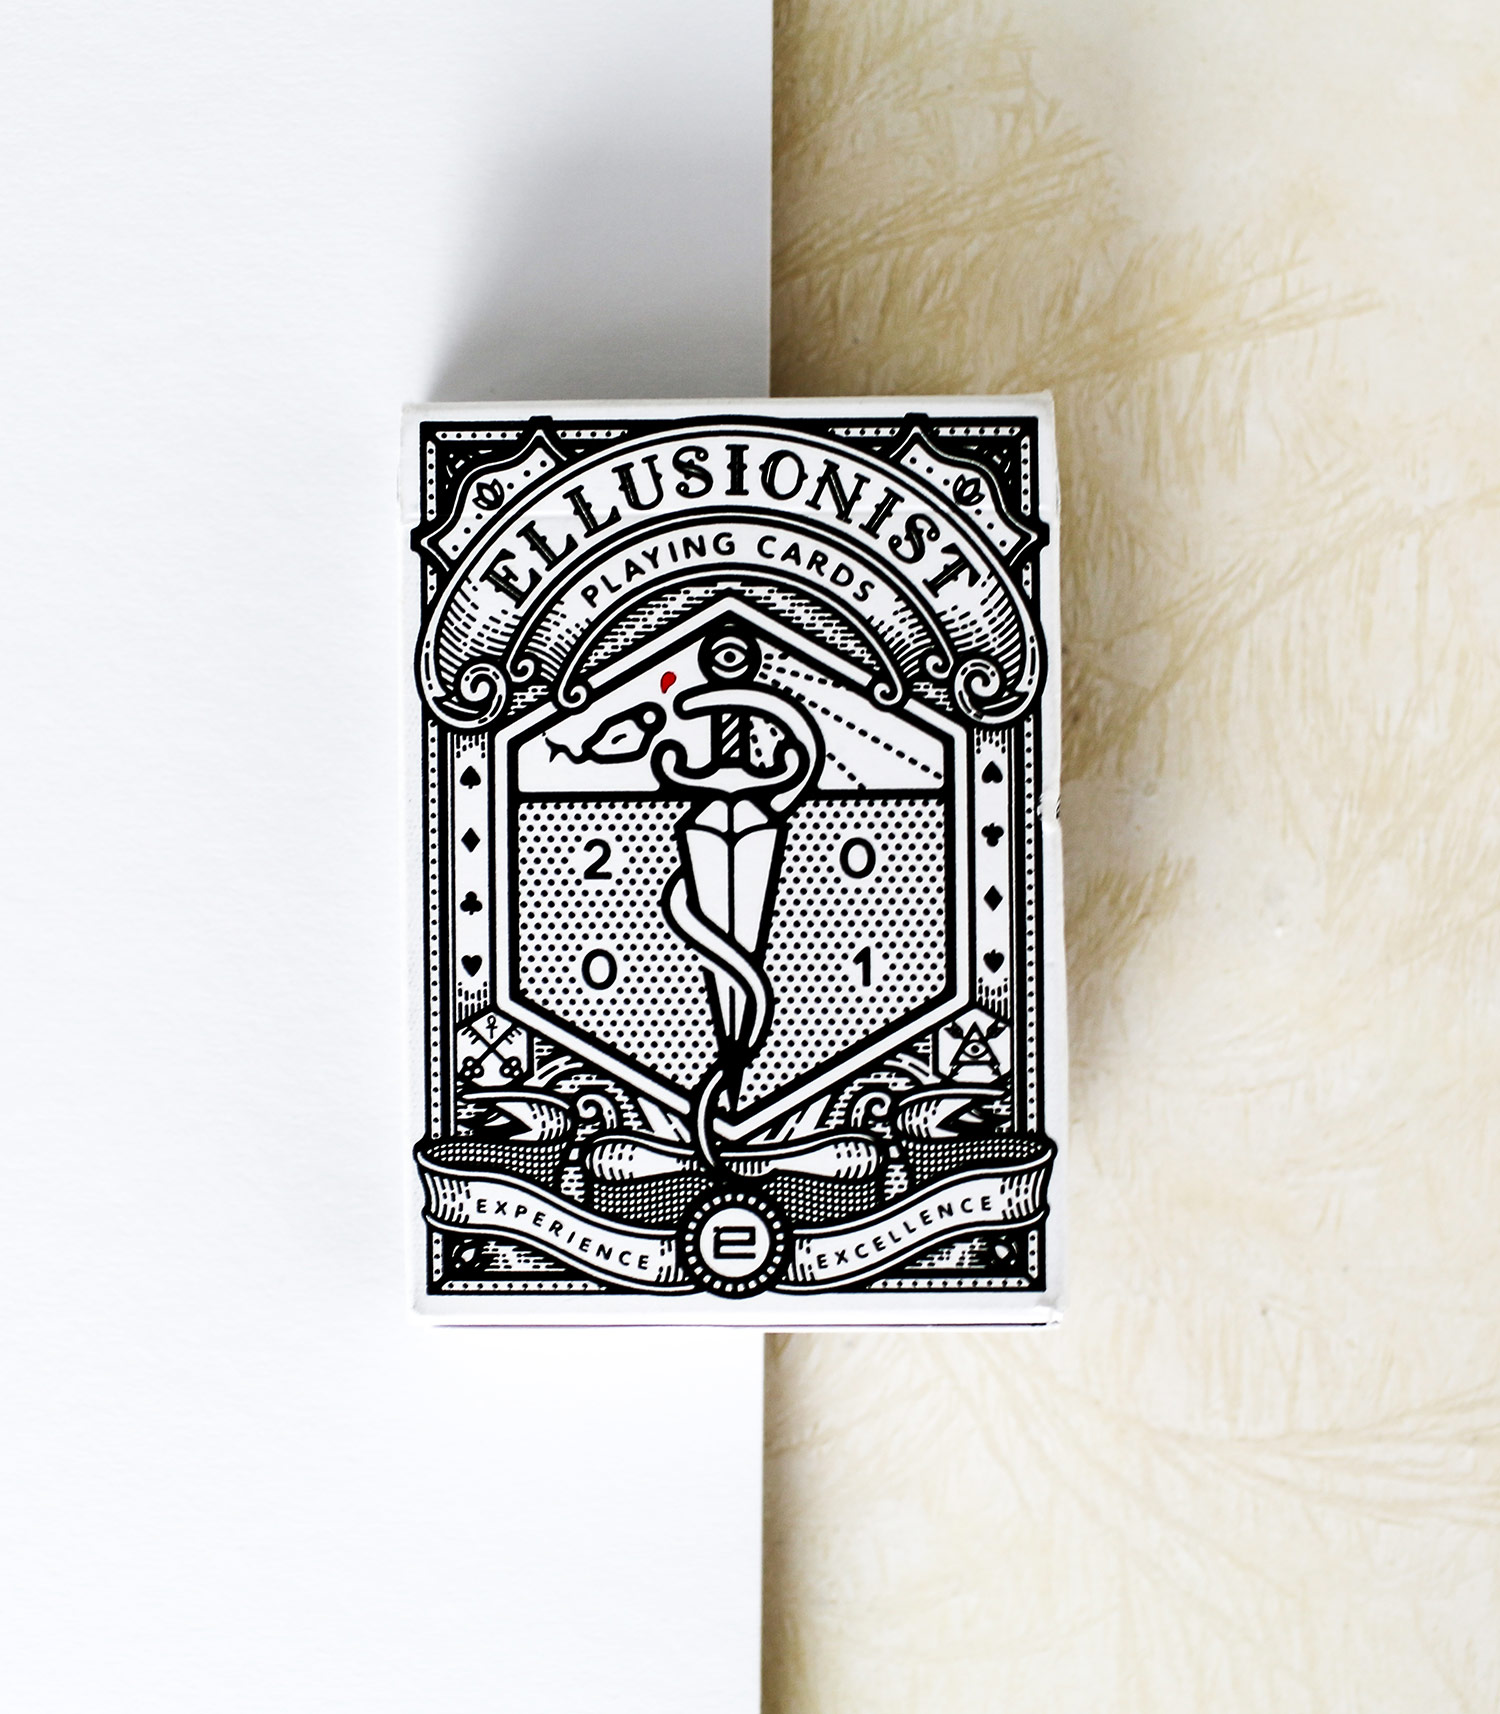 The Ellusionist Deck - The Ellusionist deck was designed as a celebration of the companies heritage, filled with easter eggs that refer back to past products and projects. Oban illustrated the packaging to have the feel of a classical sideshow attraction, whilst the clean, minimal style gives it a modern edge.Produced originally as a staff only deck for Ellusionist employees and for use in filming project and promos. It was later released to the public for a brief period and became one of Ellusionist's fastest selling decks.